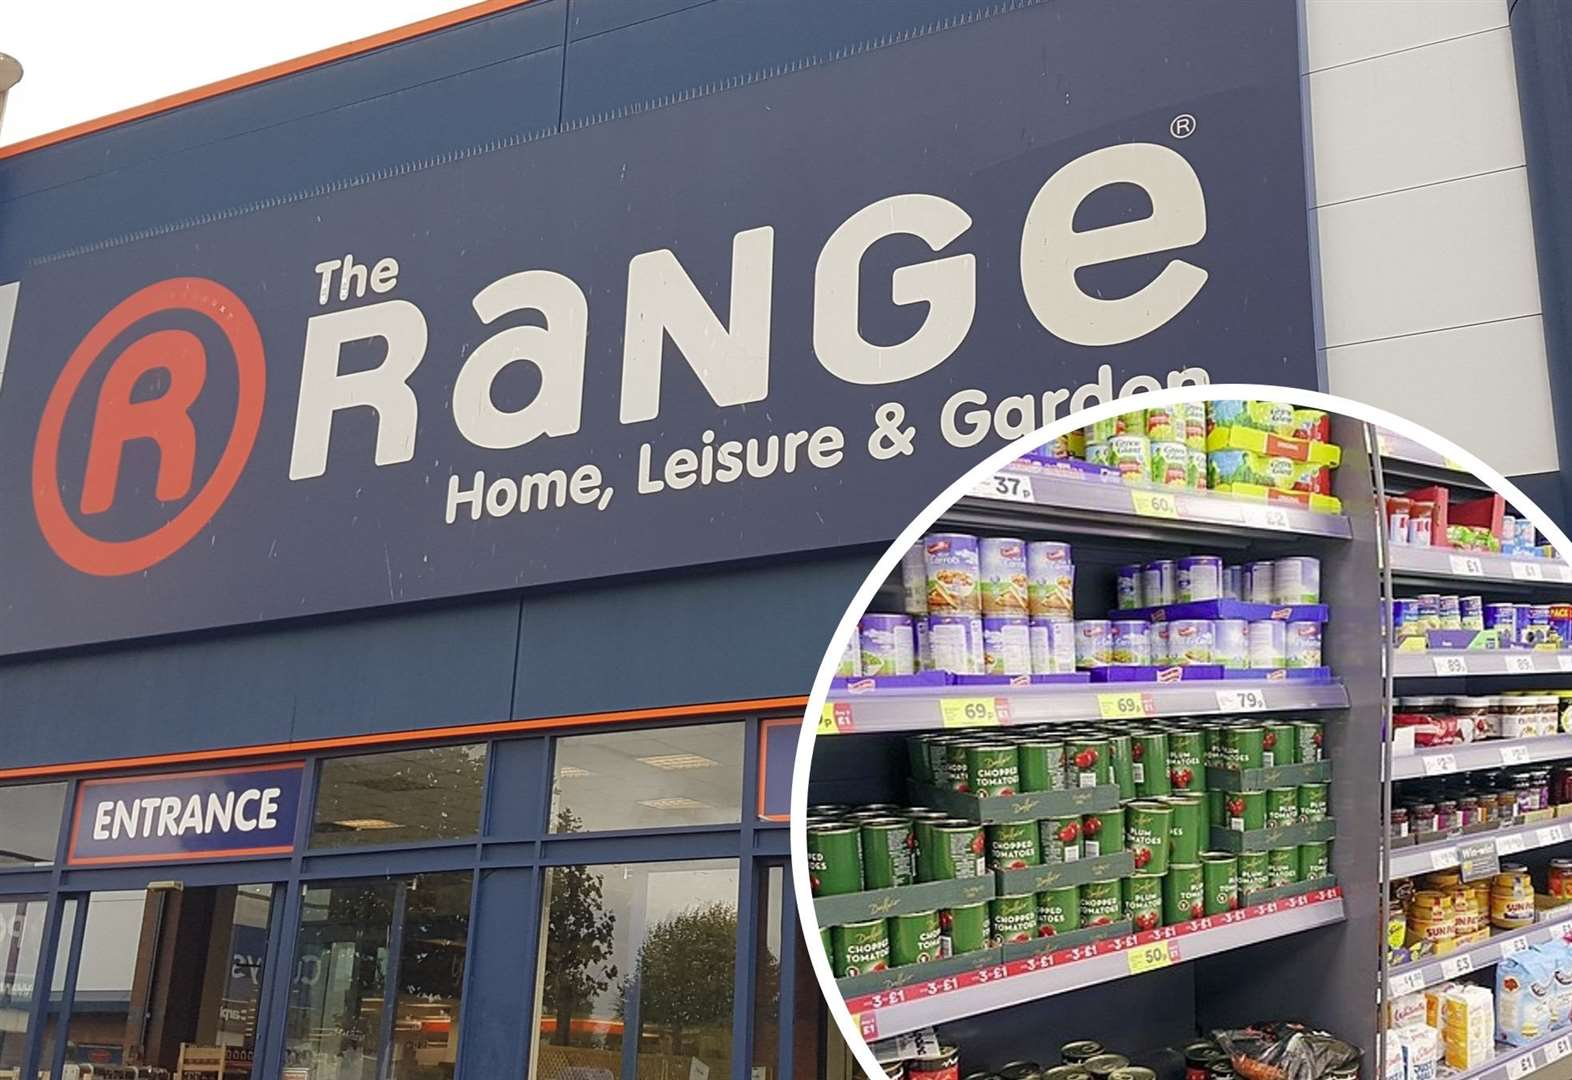 Iceland food set to be sold at The Range